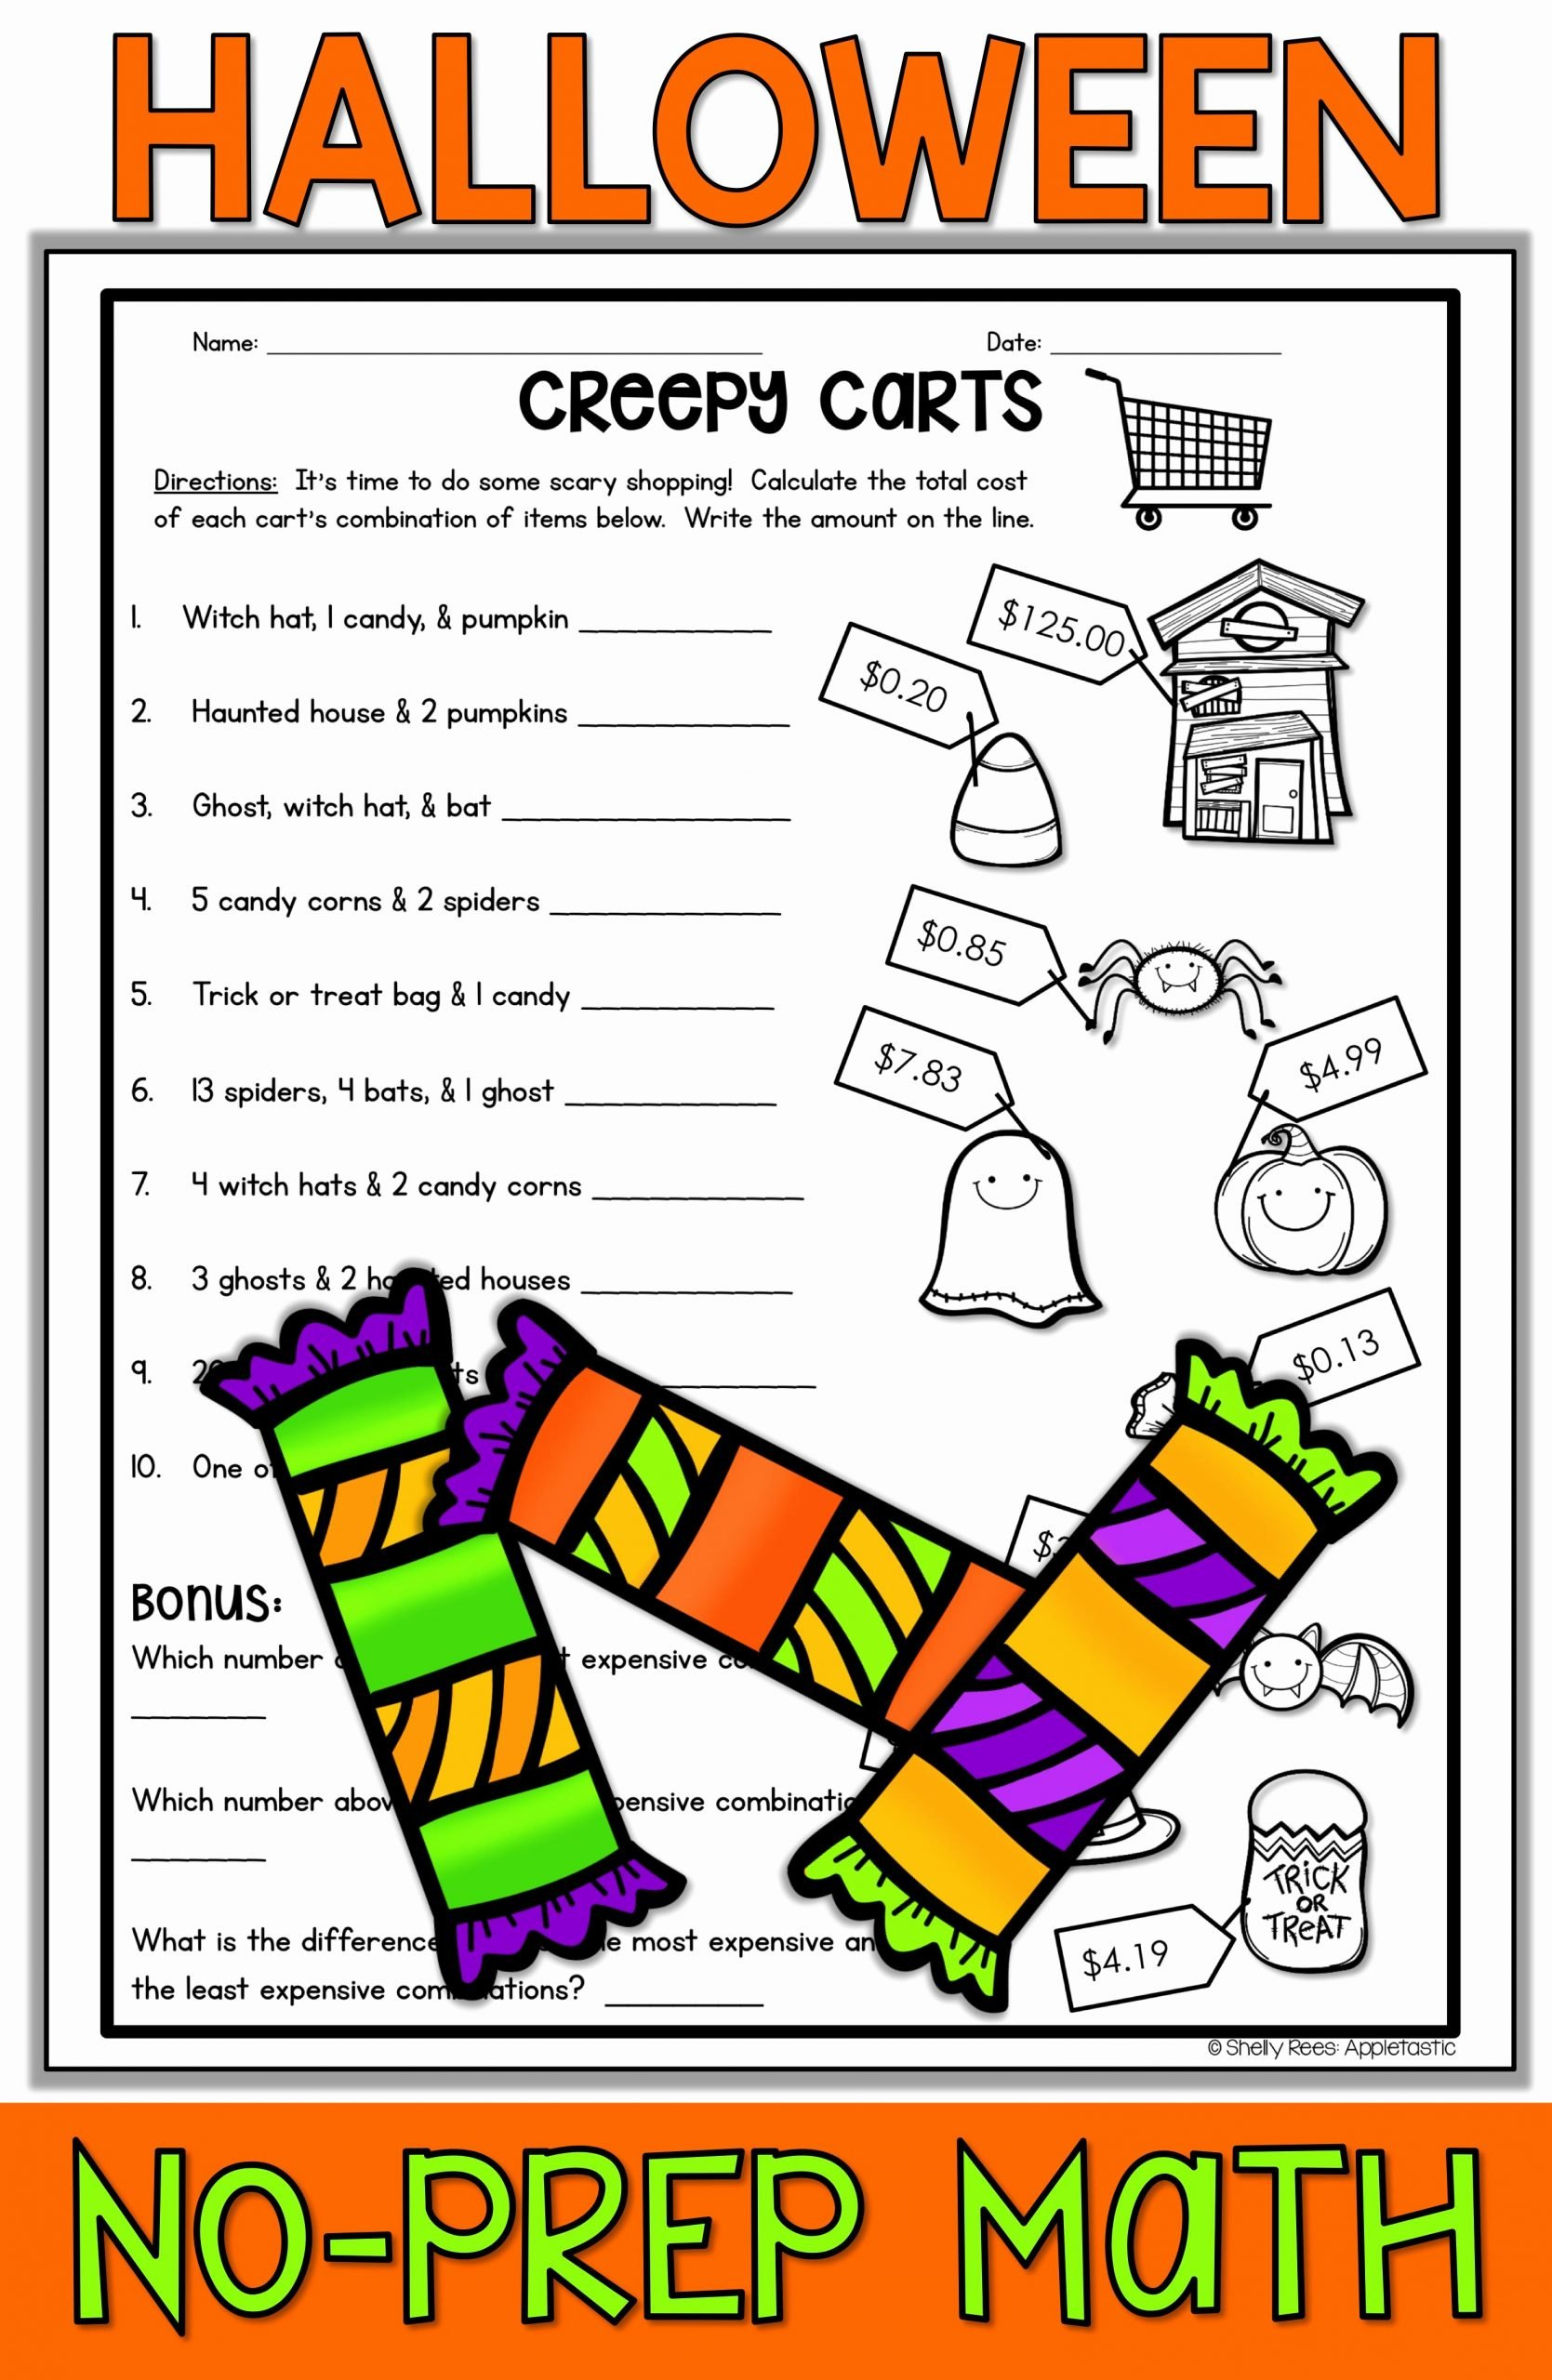 Halloween Math Worksheets Middle School Ideas Halloween Math Worksheets